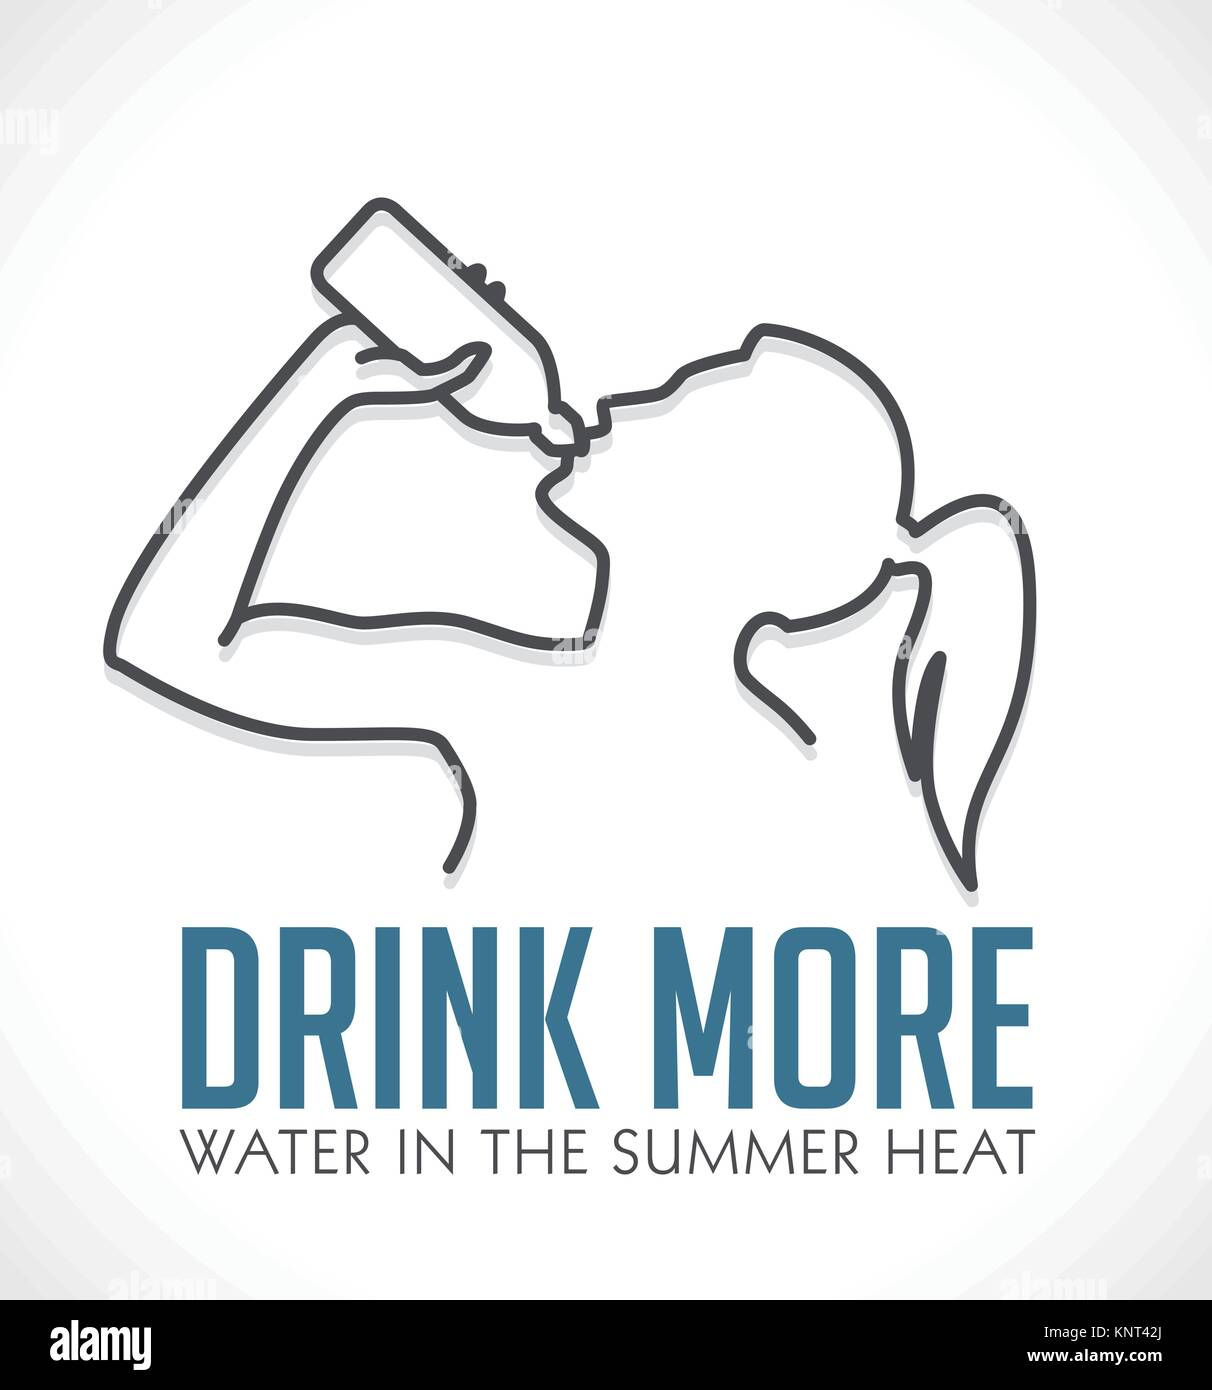 Logo - Drink more water in summer heat – stock illustration - Stock Vector